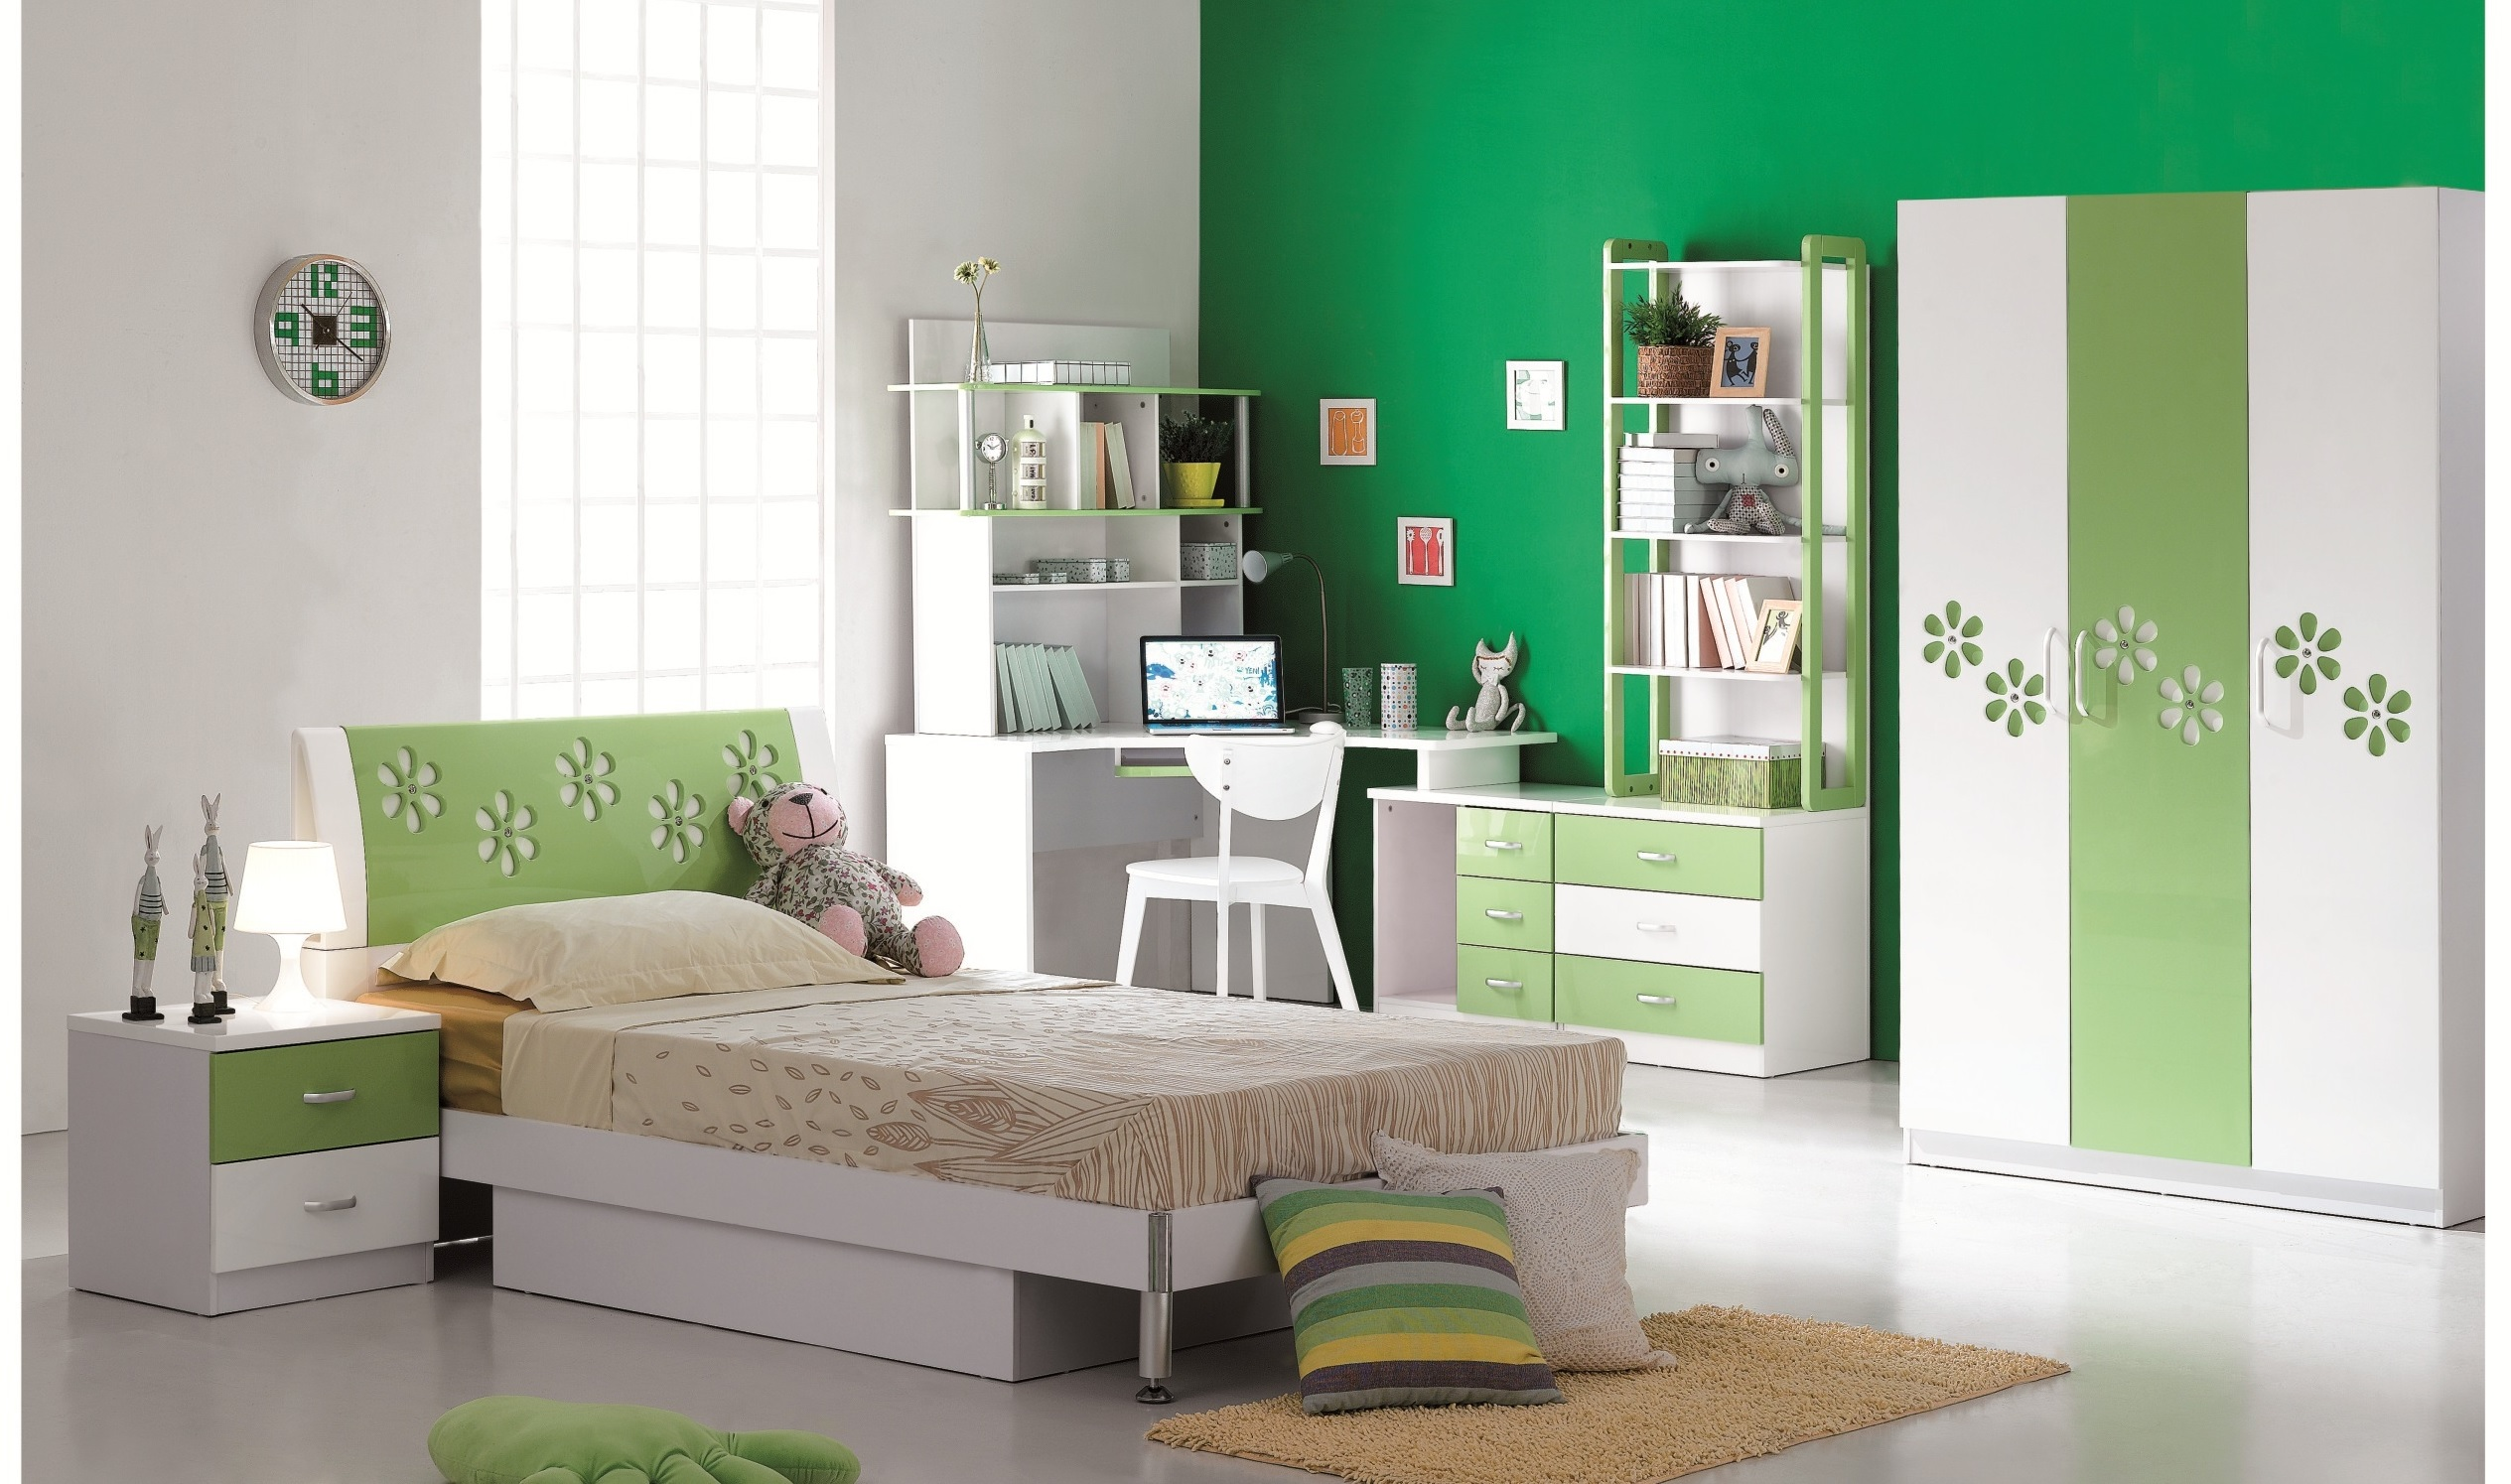 Buy pink floral wardrobe for kids online on kidskouch india for Bedroom cabinet designs india